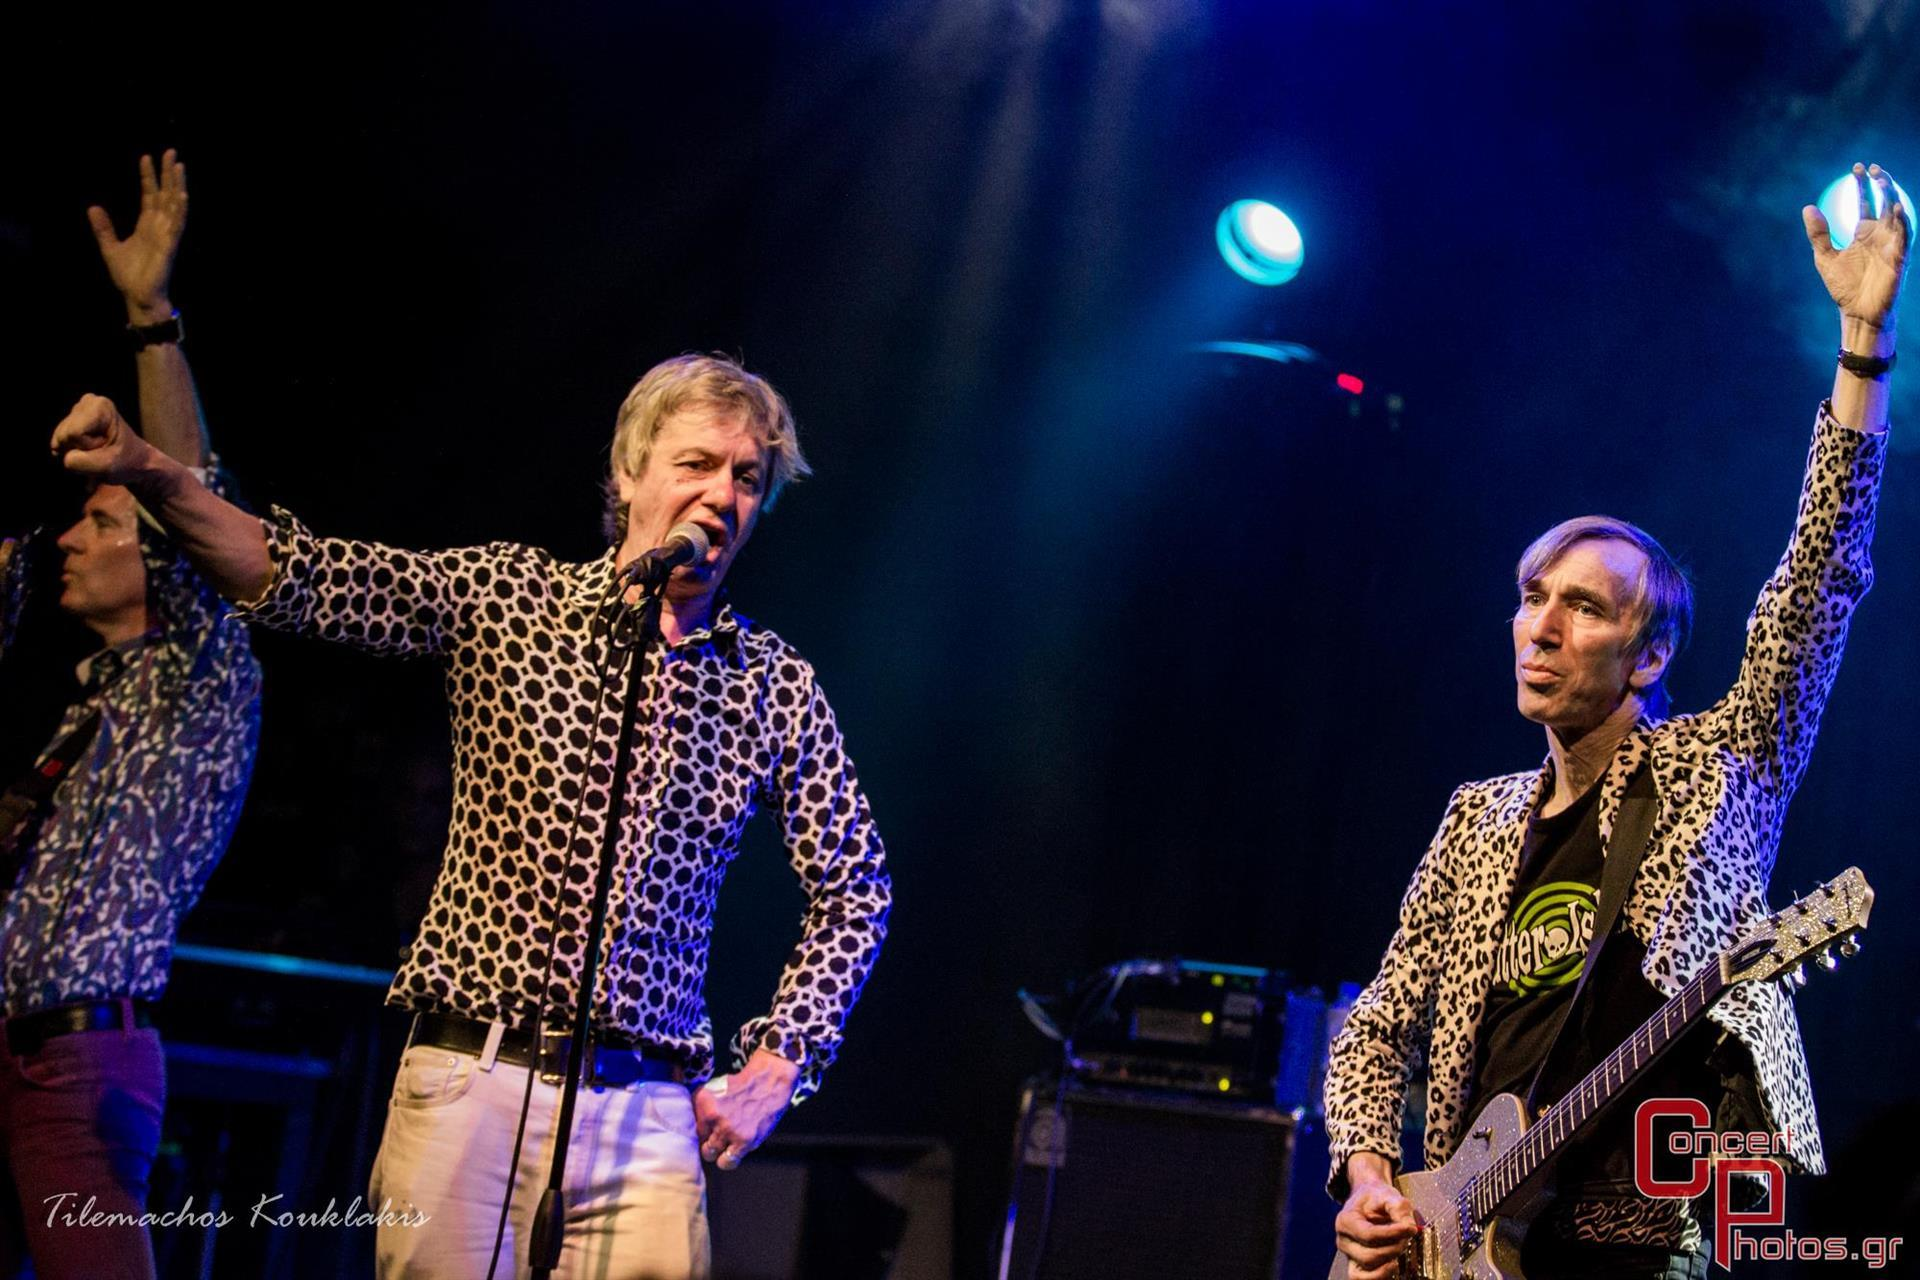 The Fleshtones - Dirty Fuse - The Statycs-The Fleshtones - Dirty Fuse - The Statycs photographer:  - IMG_7981